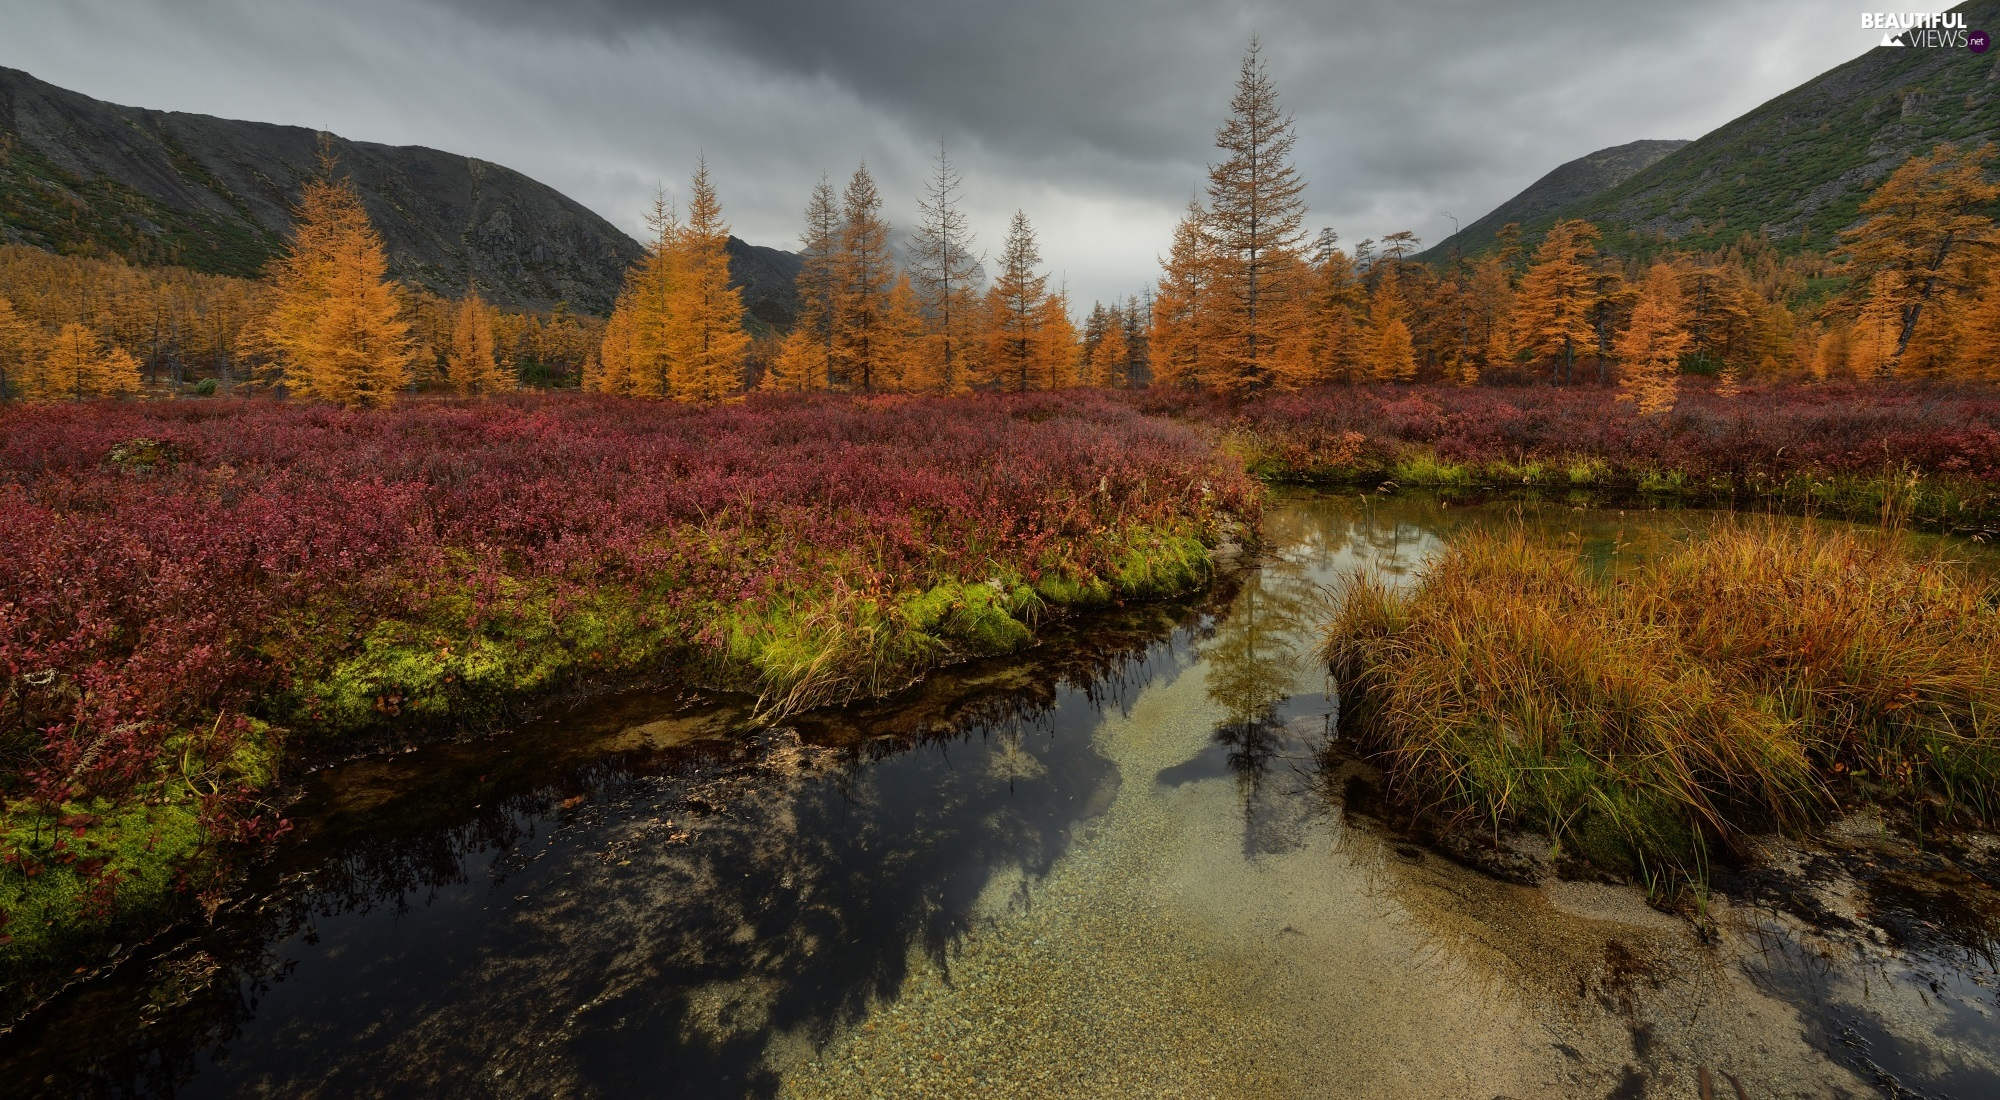 Magadan Circuit, Russia, autumn, Mountains, Kolyma River, VEGETATION, trees, viewes, forest